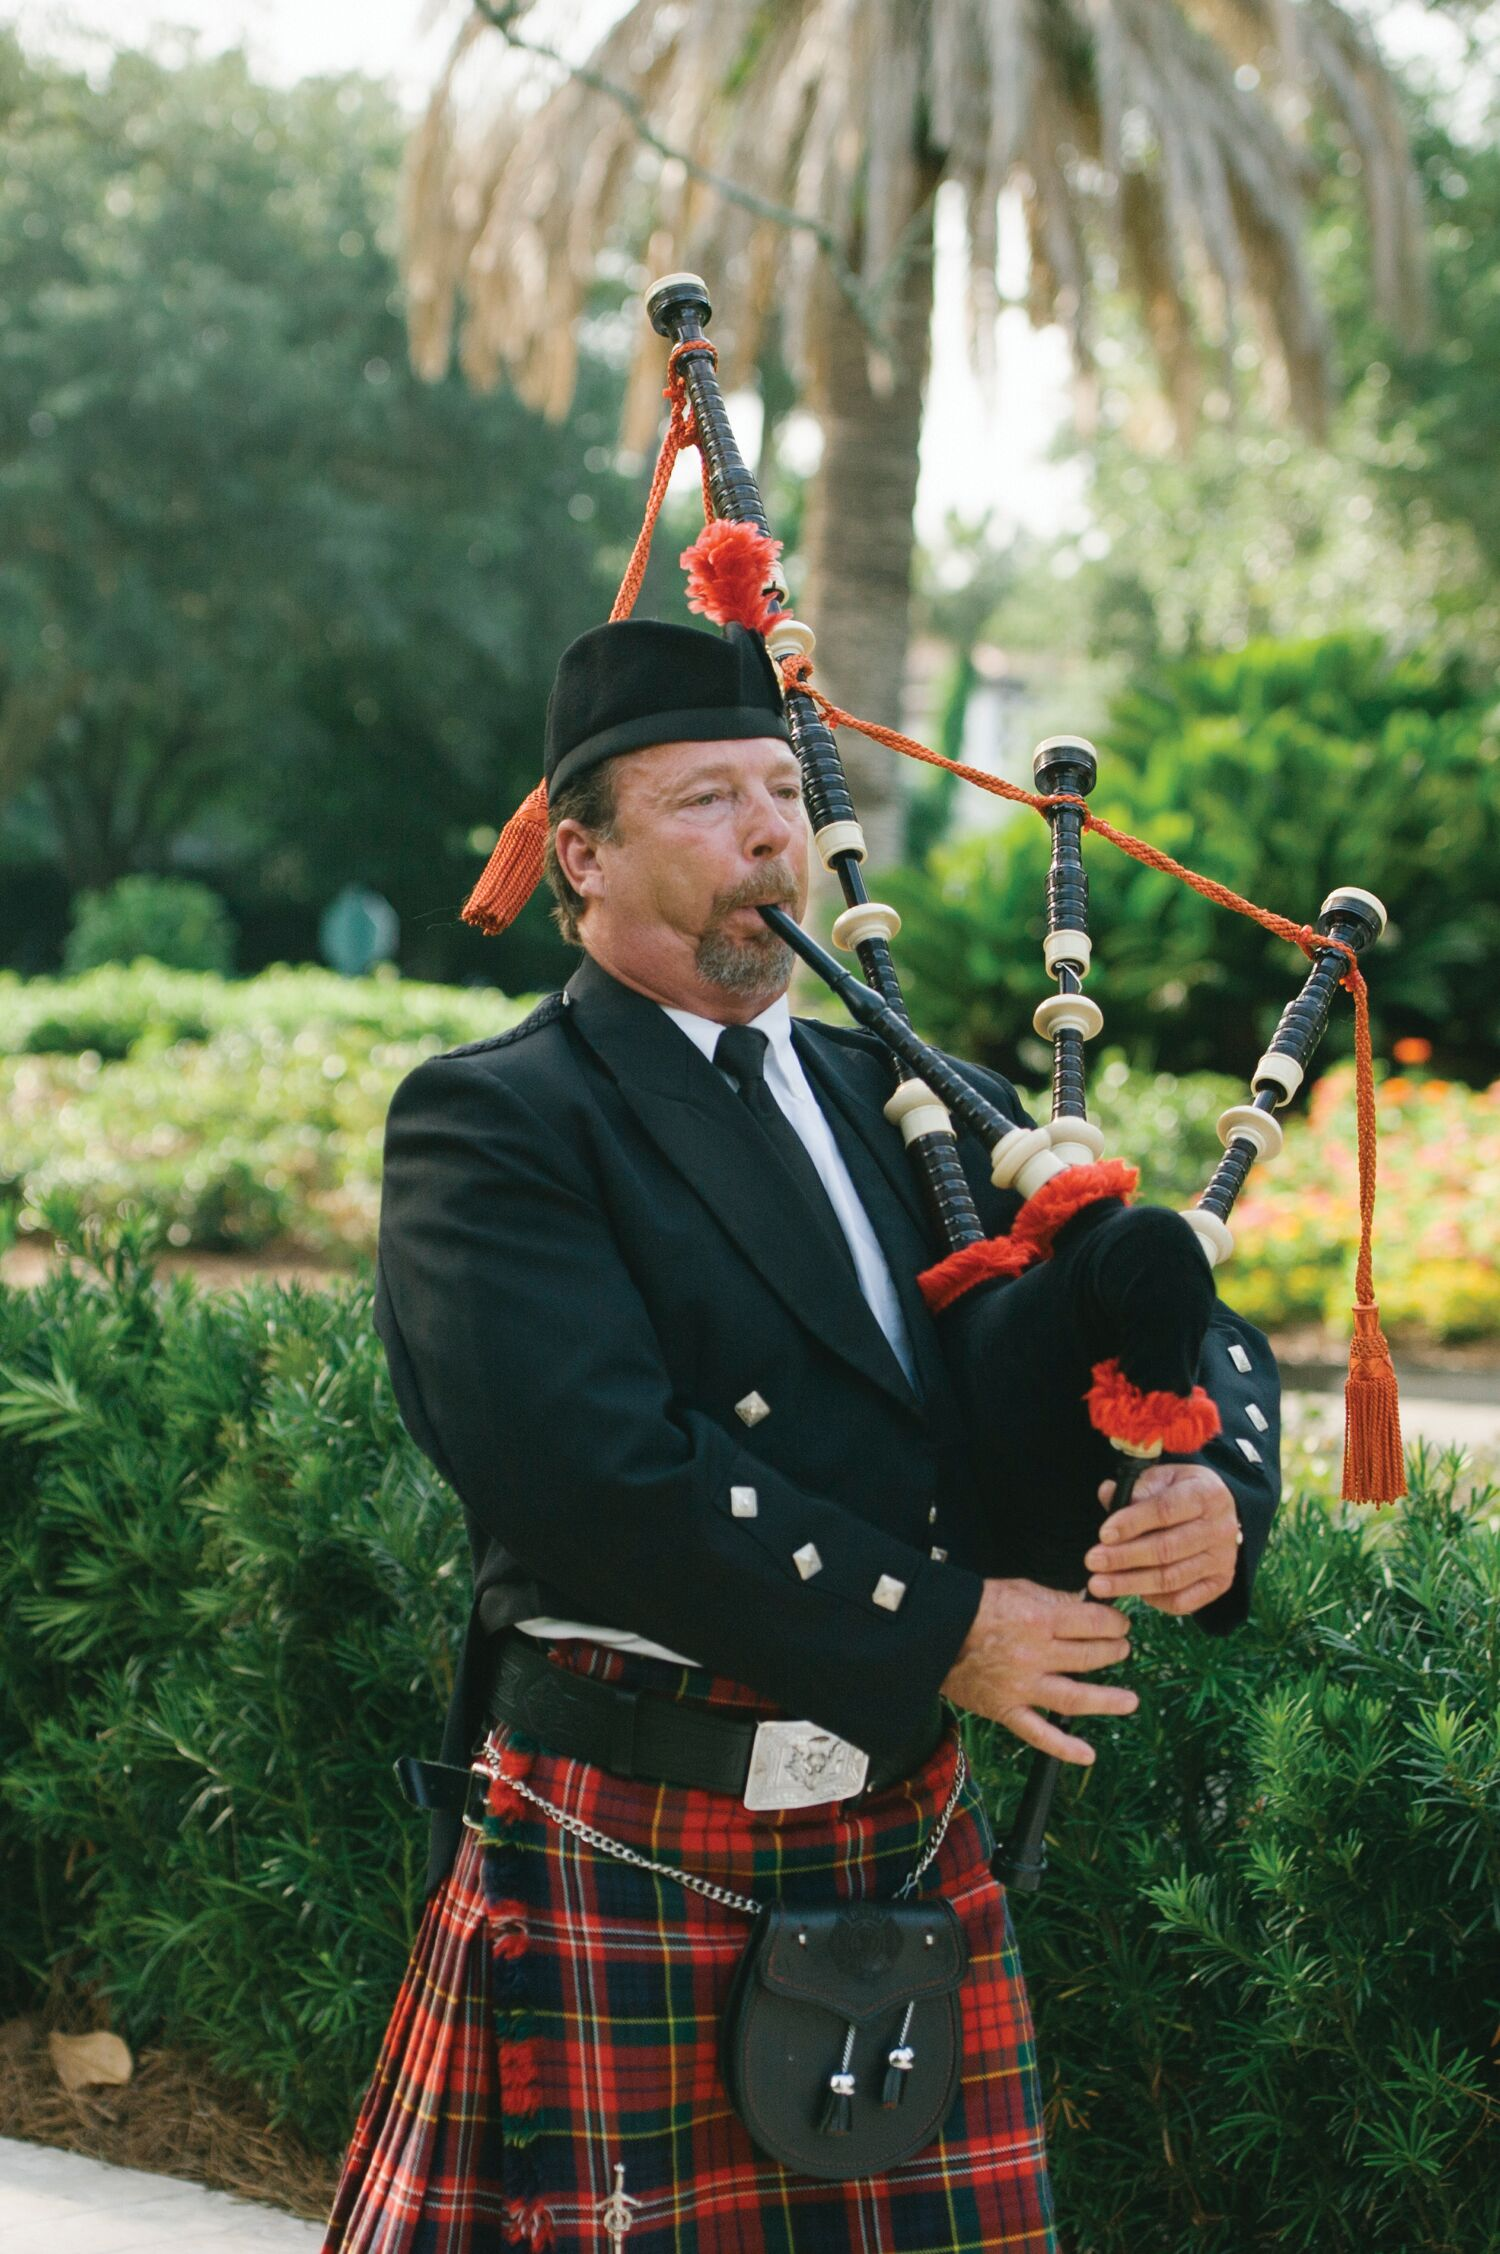 Traditional Scottish Bagpipe Player Recessional Music